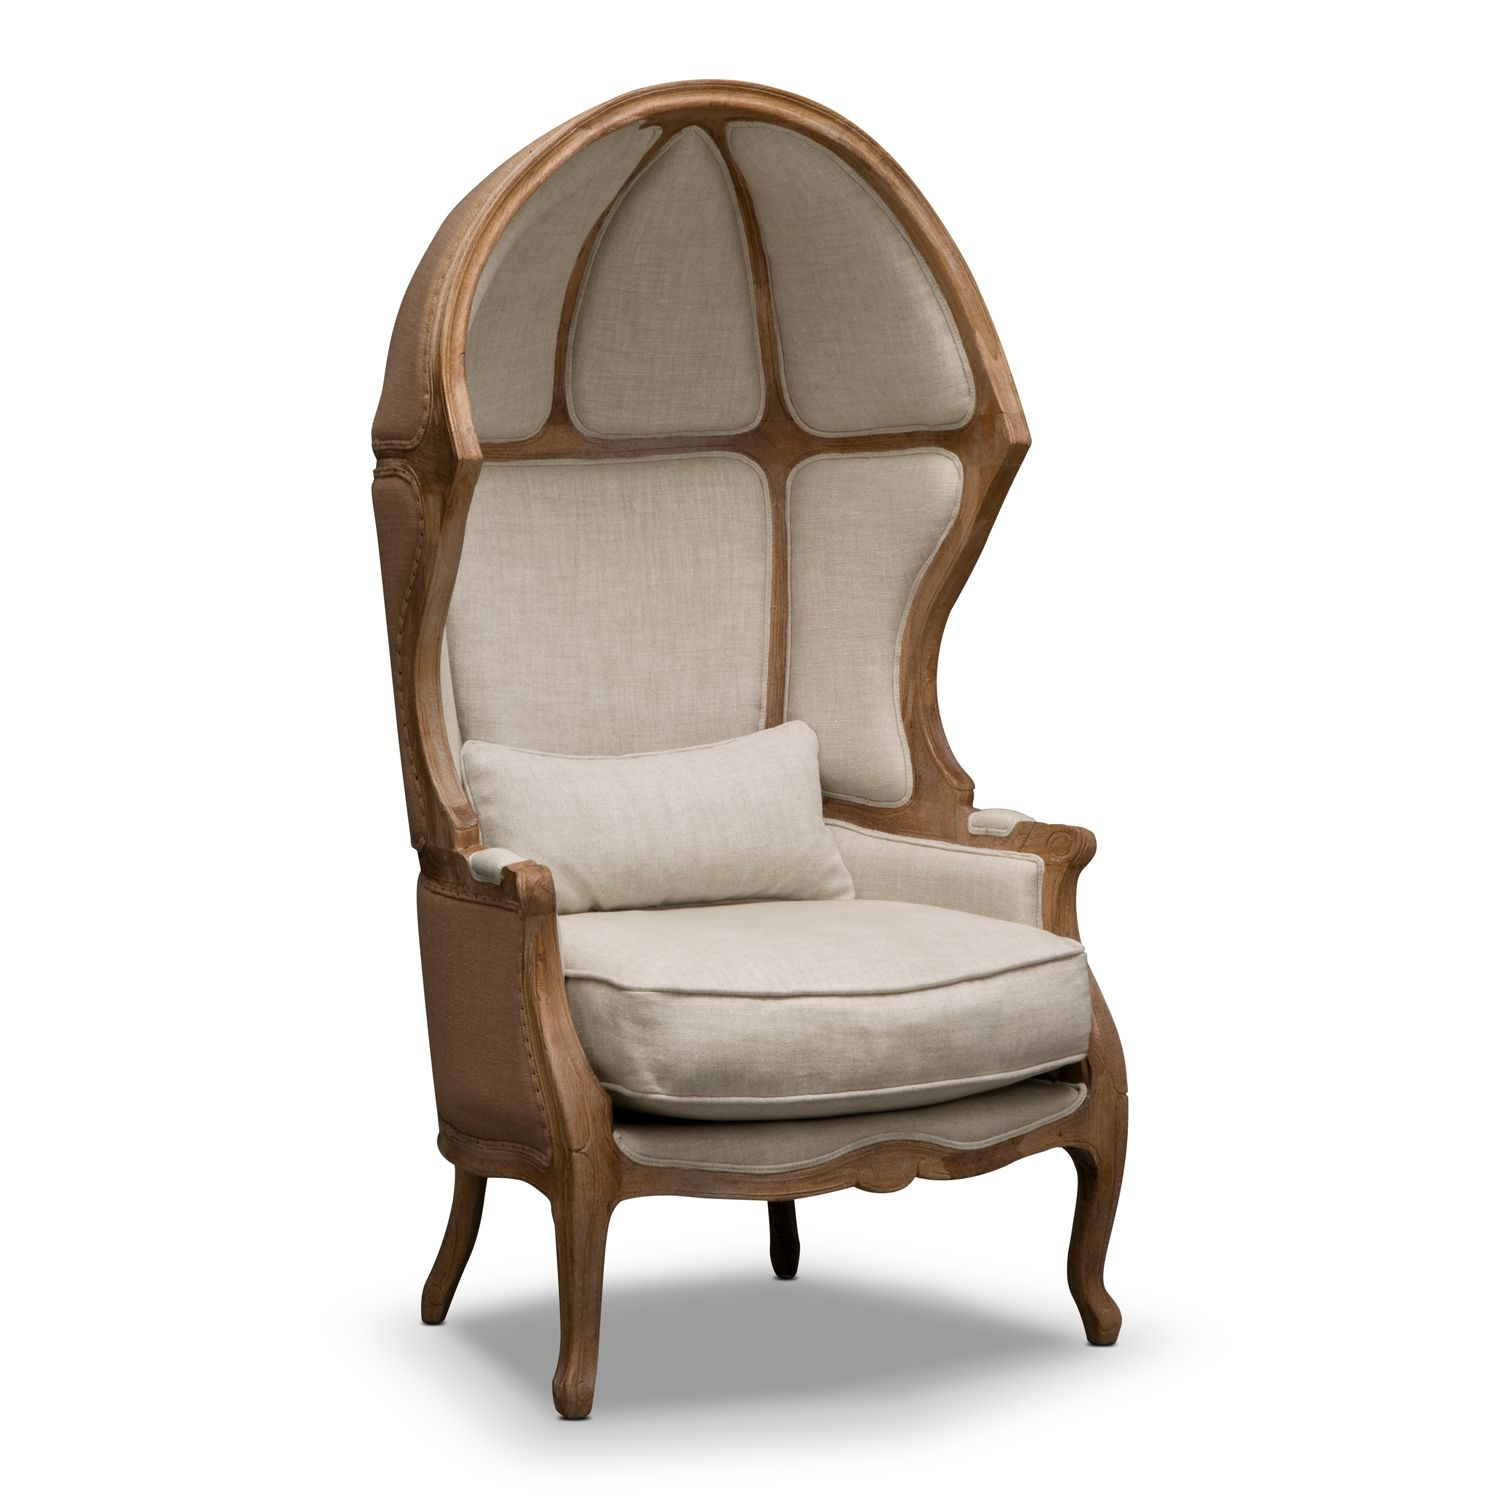 Marquette Beige Upholstery Dome Accent Chair | Furniture.com ...